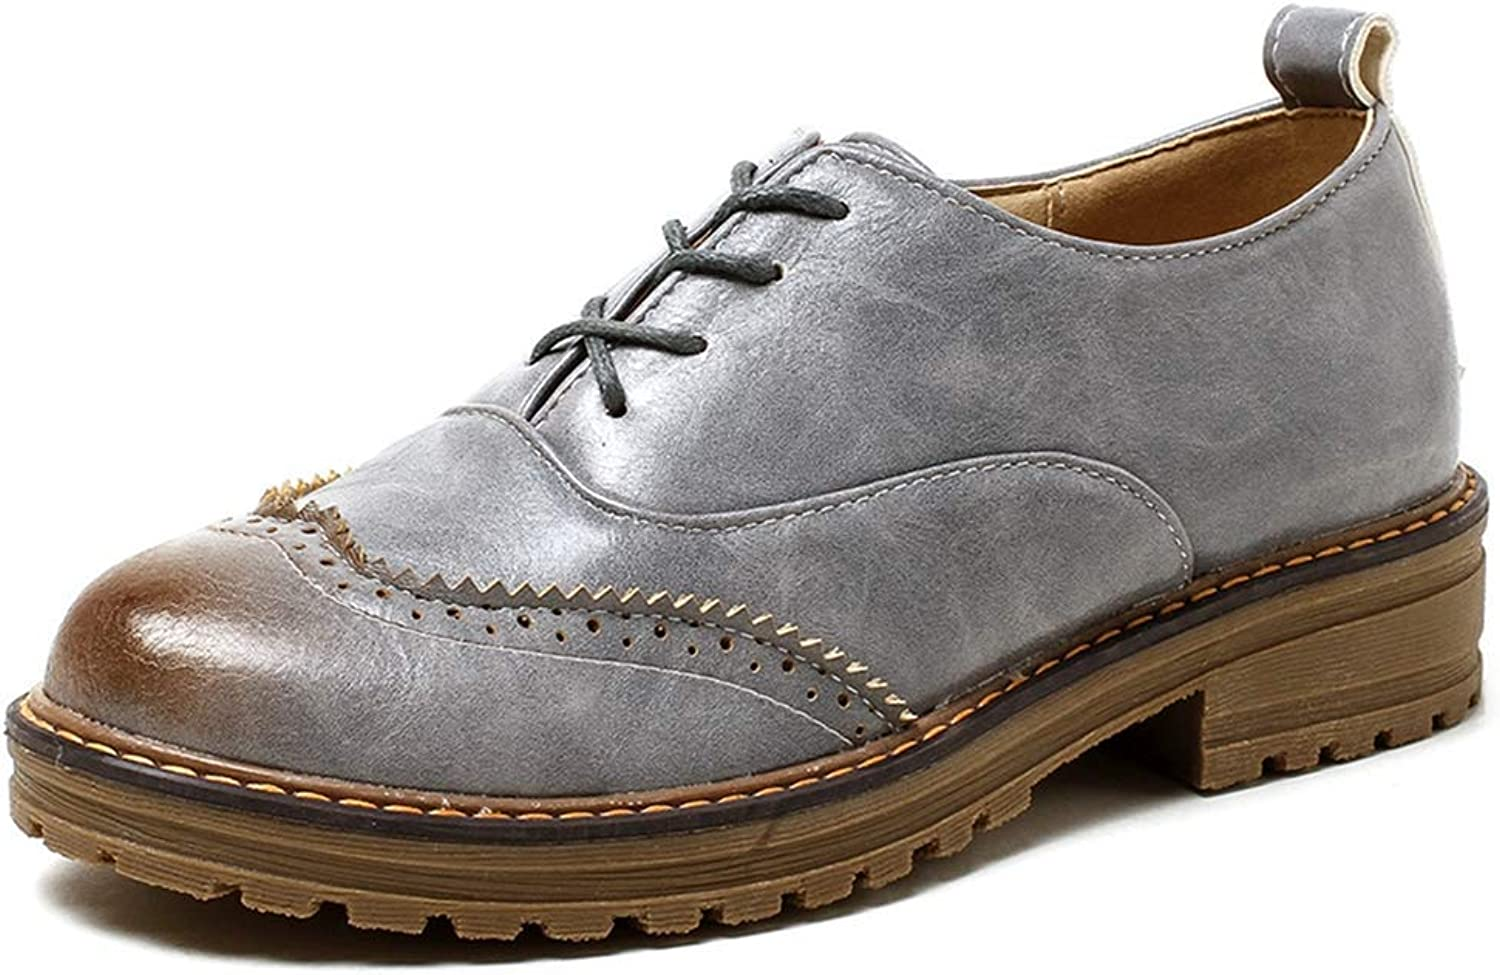 KEREE Women's Classic Saddle Oxford shoes Wingtip Lace Up British Casual Flat Low Heel Oxfords Brogues Black